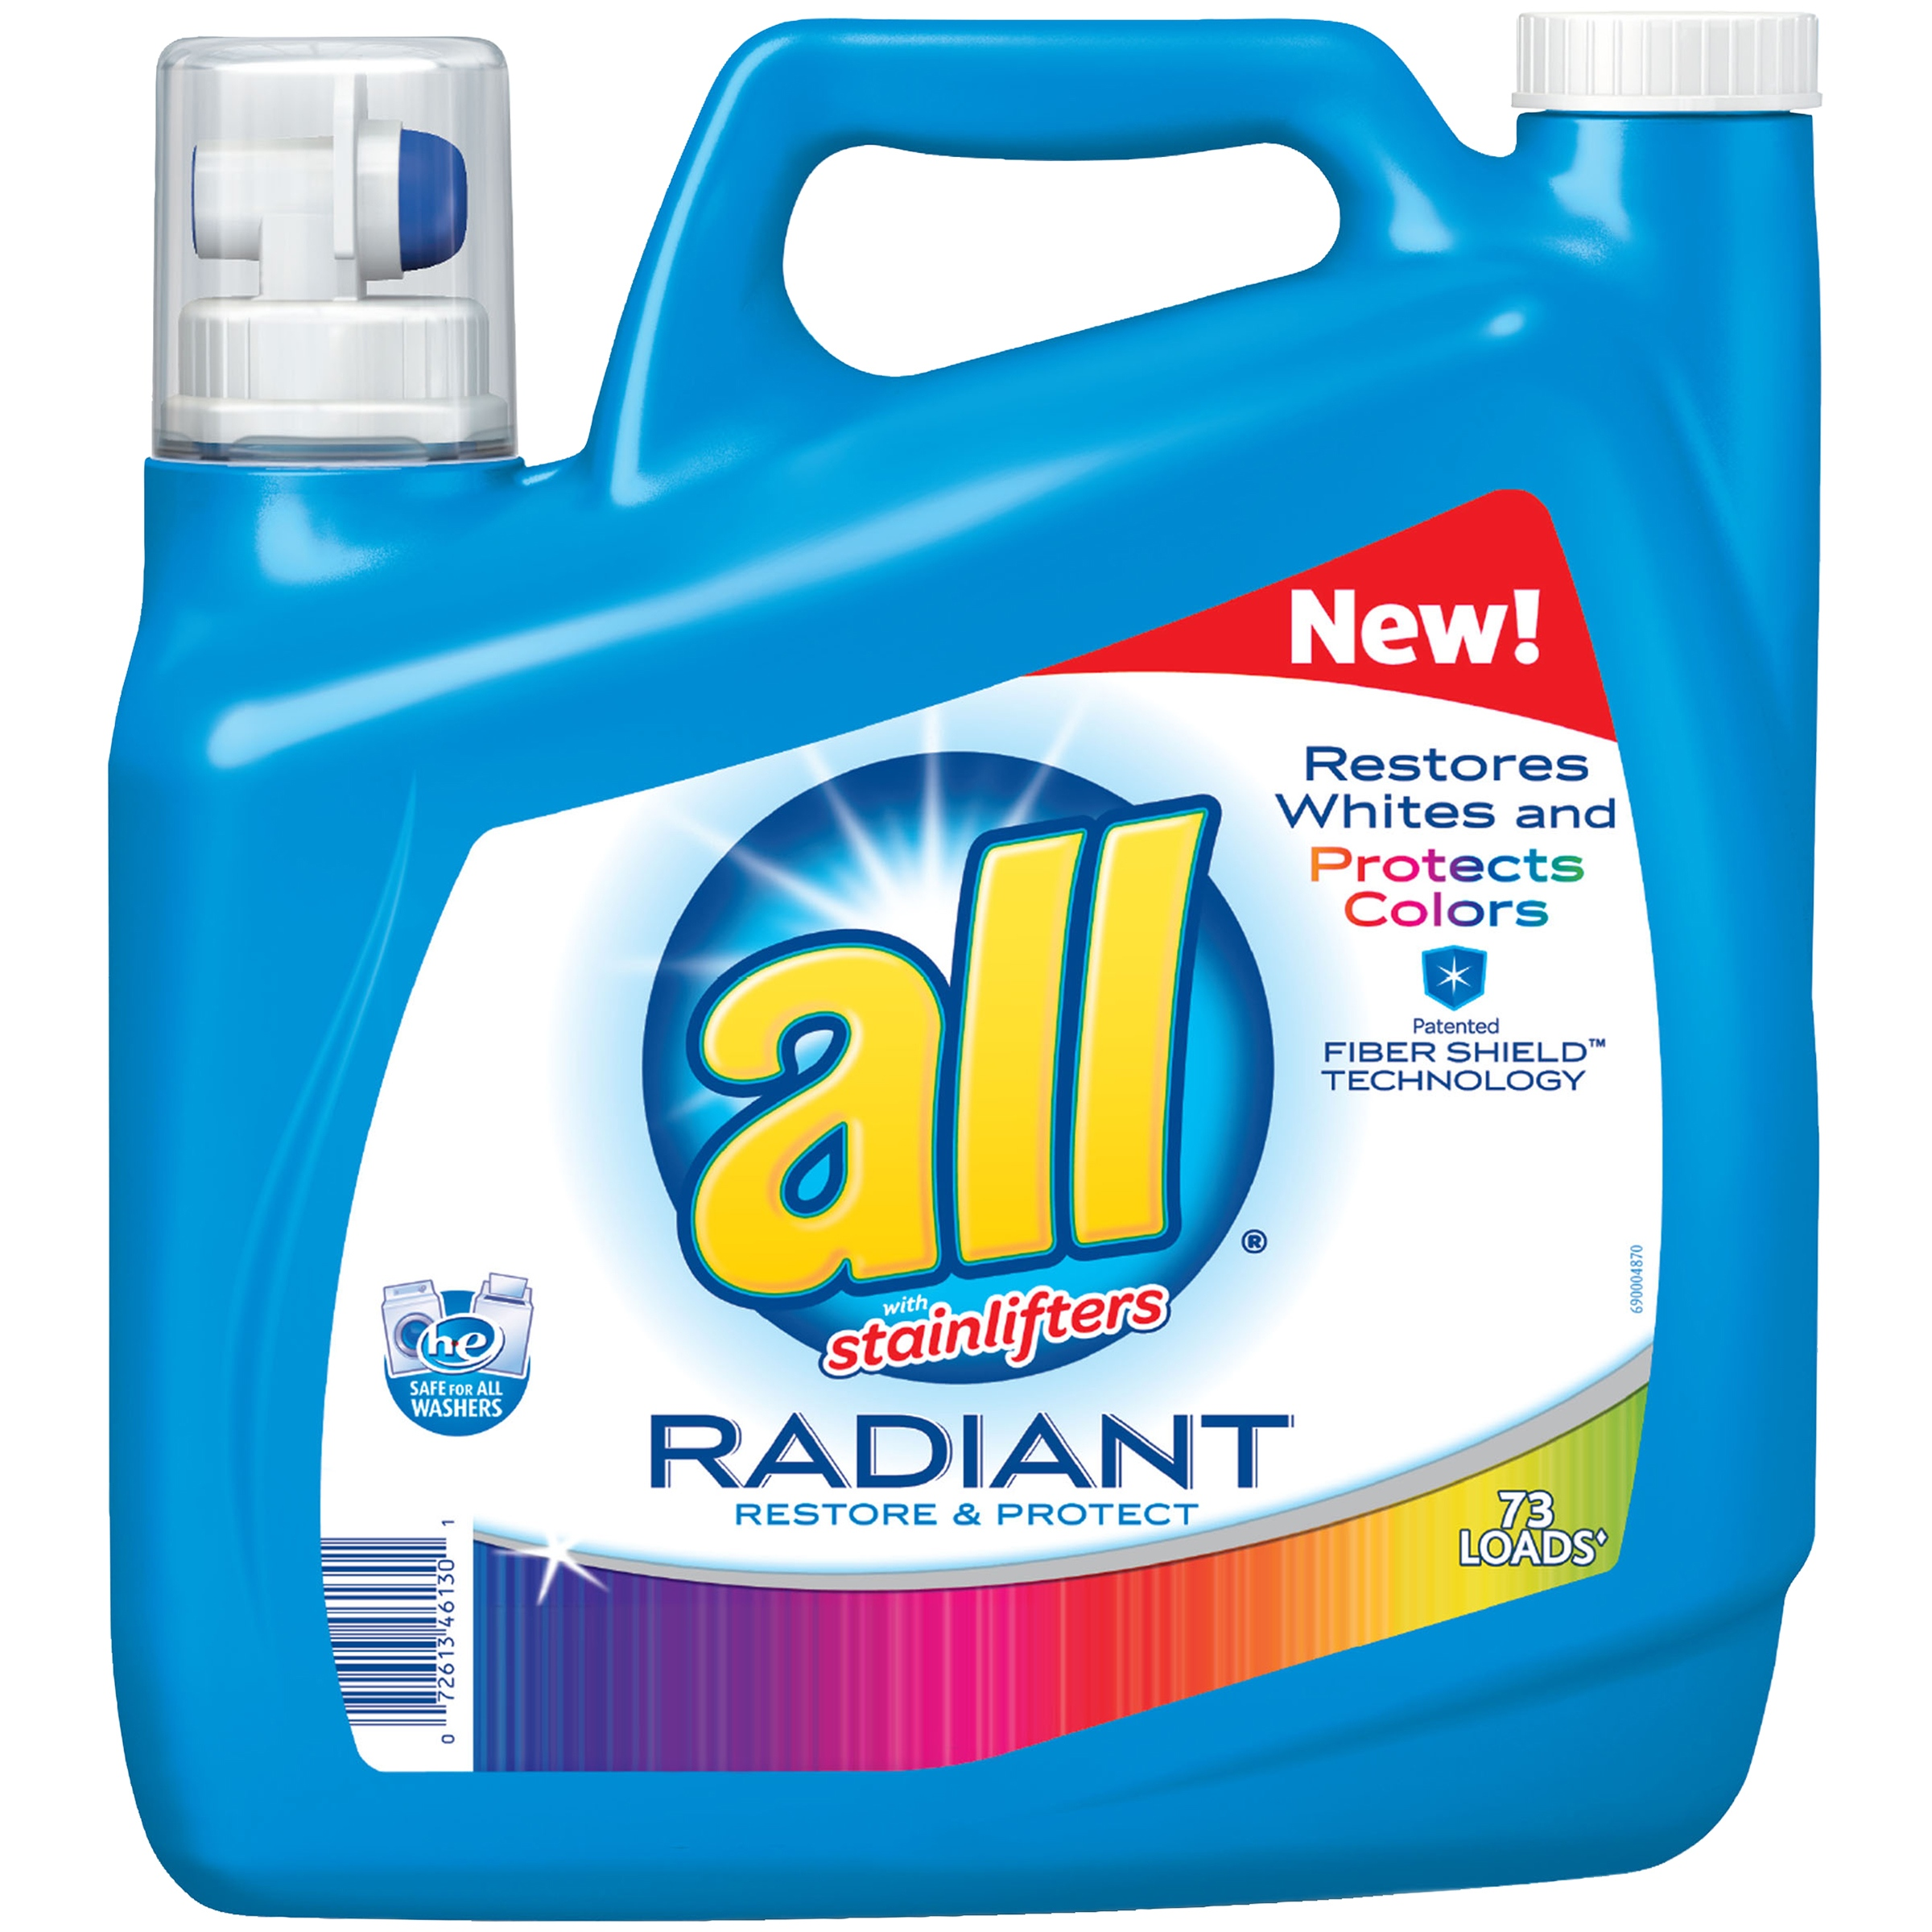 All® with Stainlifters Radiant Restore & Protect Liquid Laundry Detergent 141 fl. oz. Jug